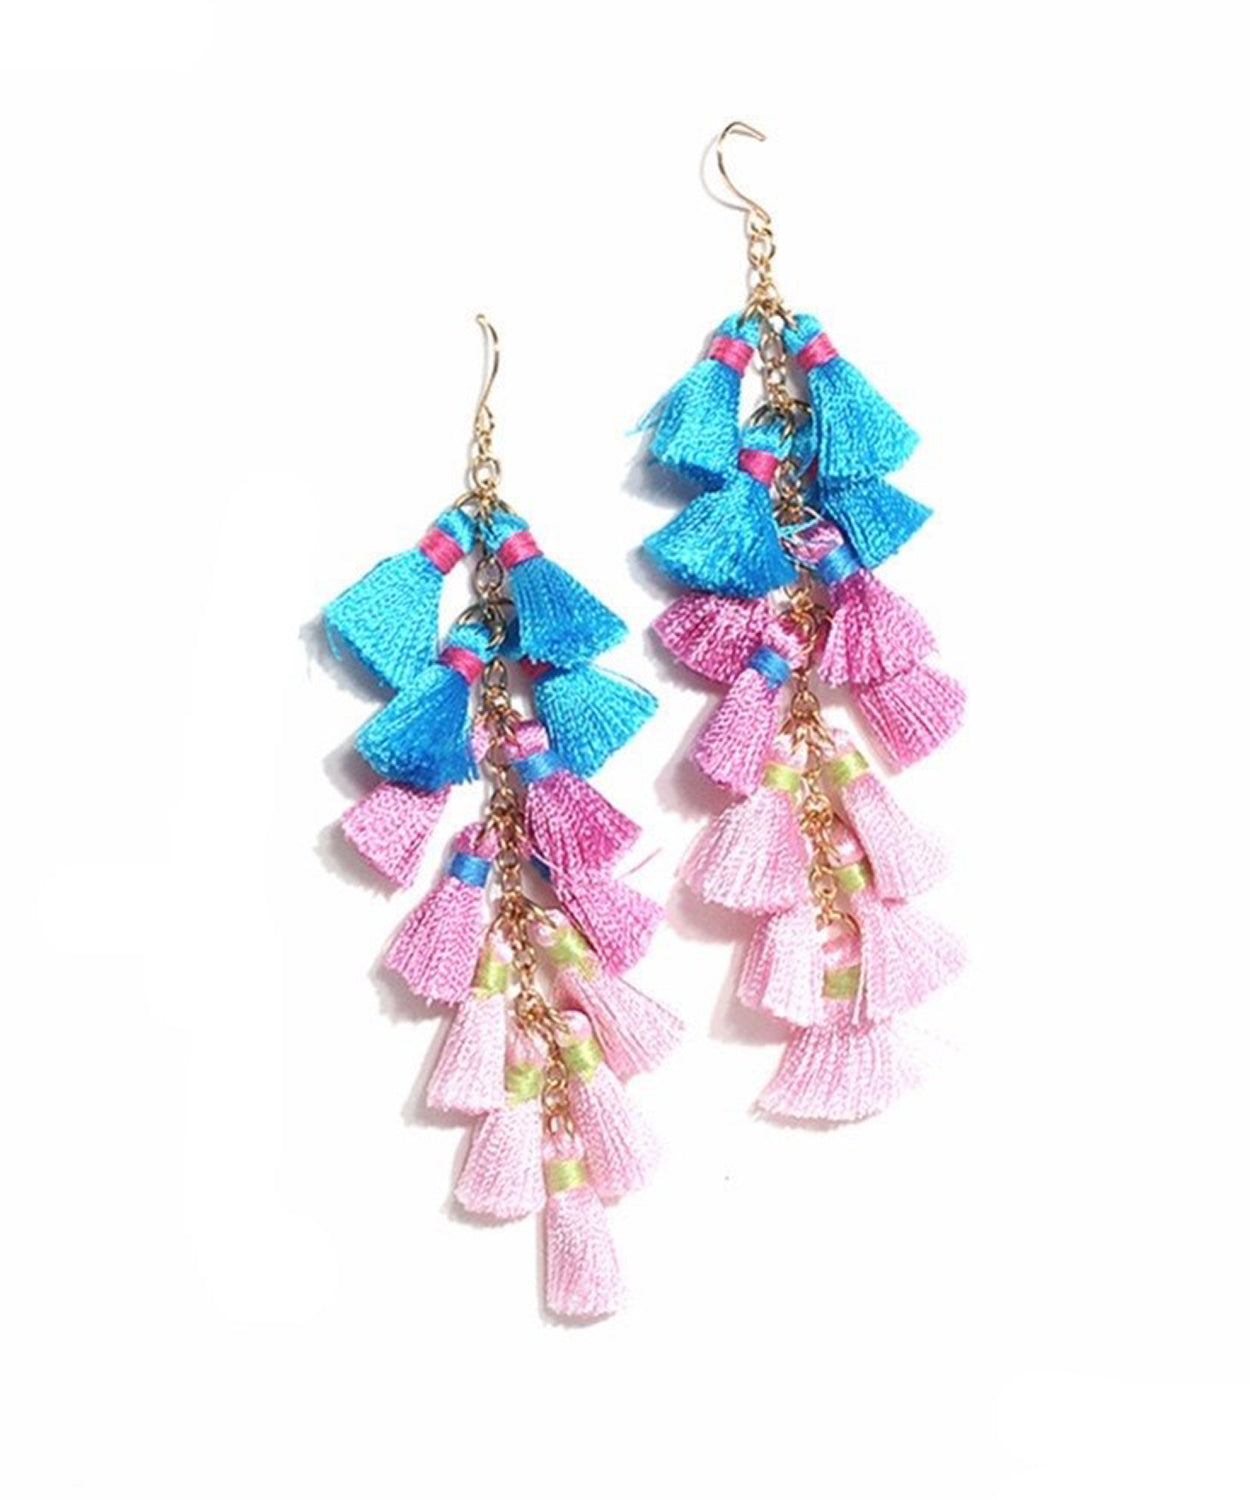 bcf4ae9d408 Contessa Blue Pink Tassel Earrings